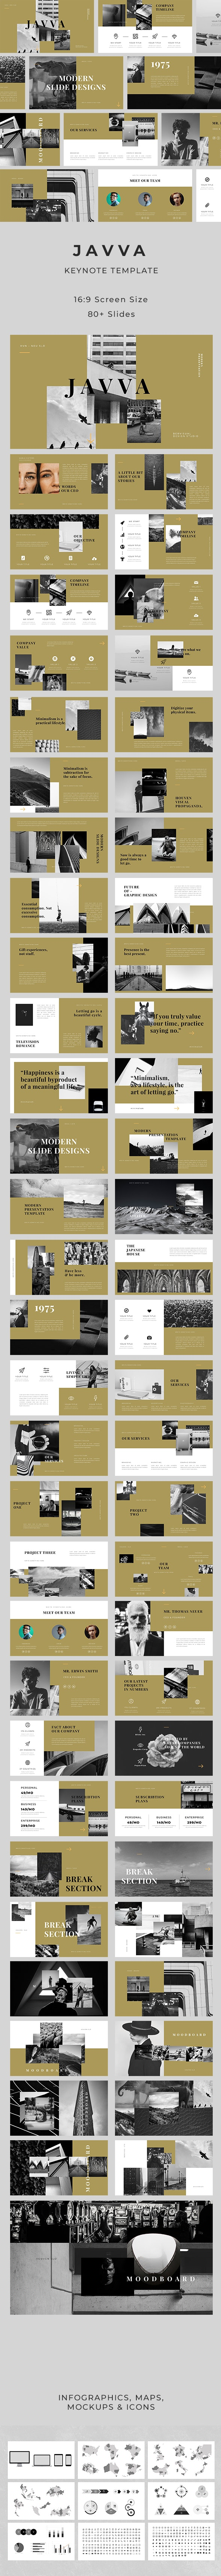 Javva Keynote Template - Creative Keynote Templates